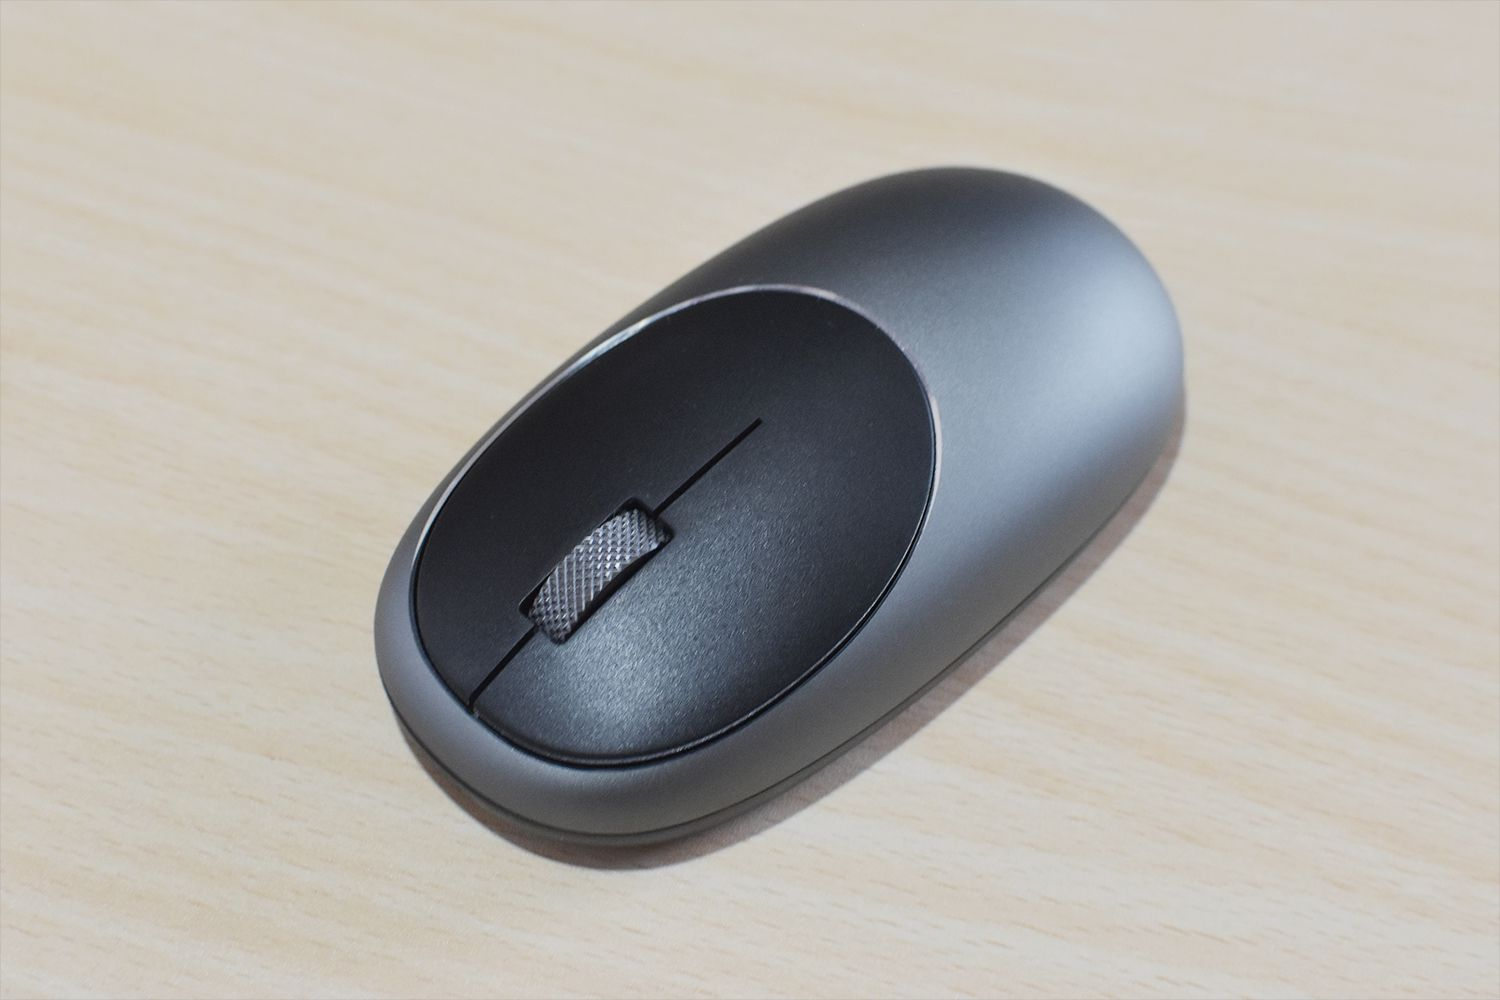 Satechi M1 Bluetooth Mouse